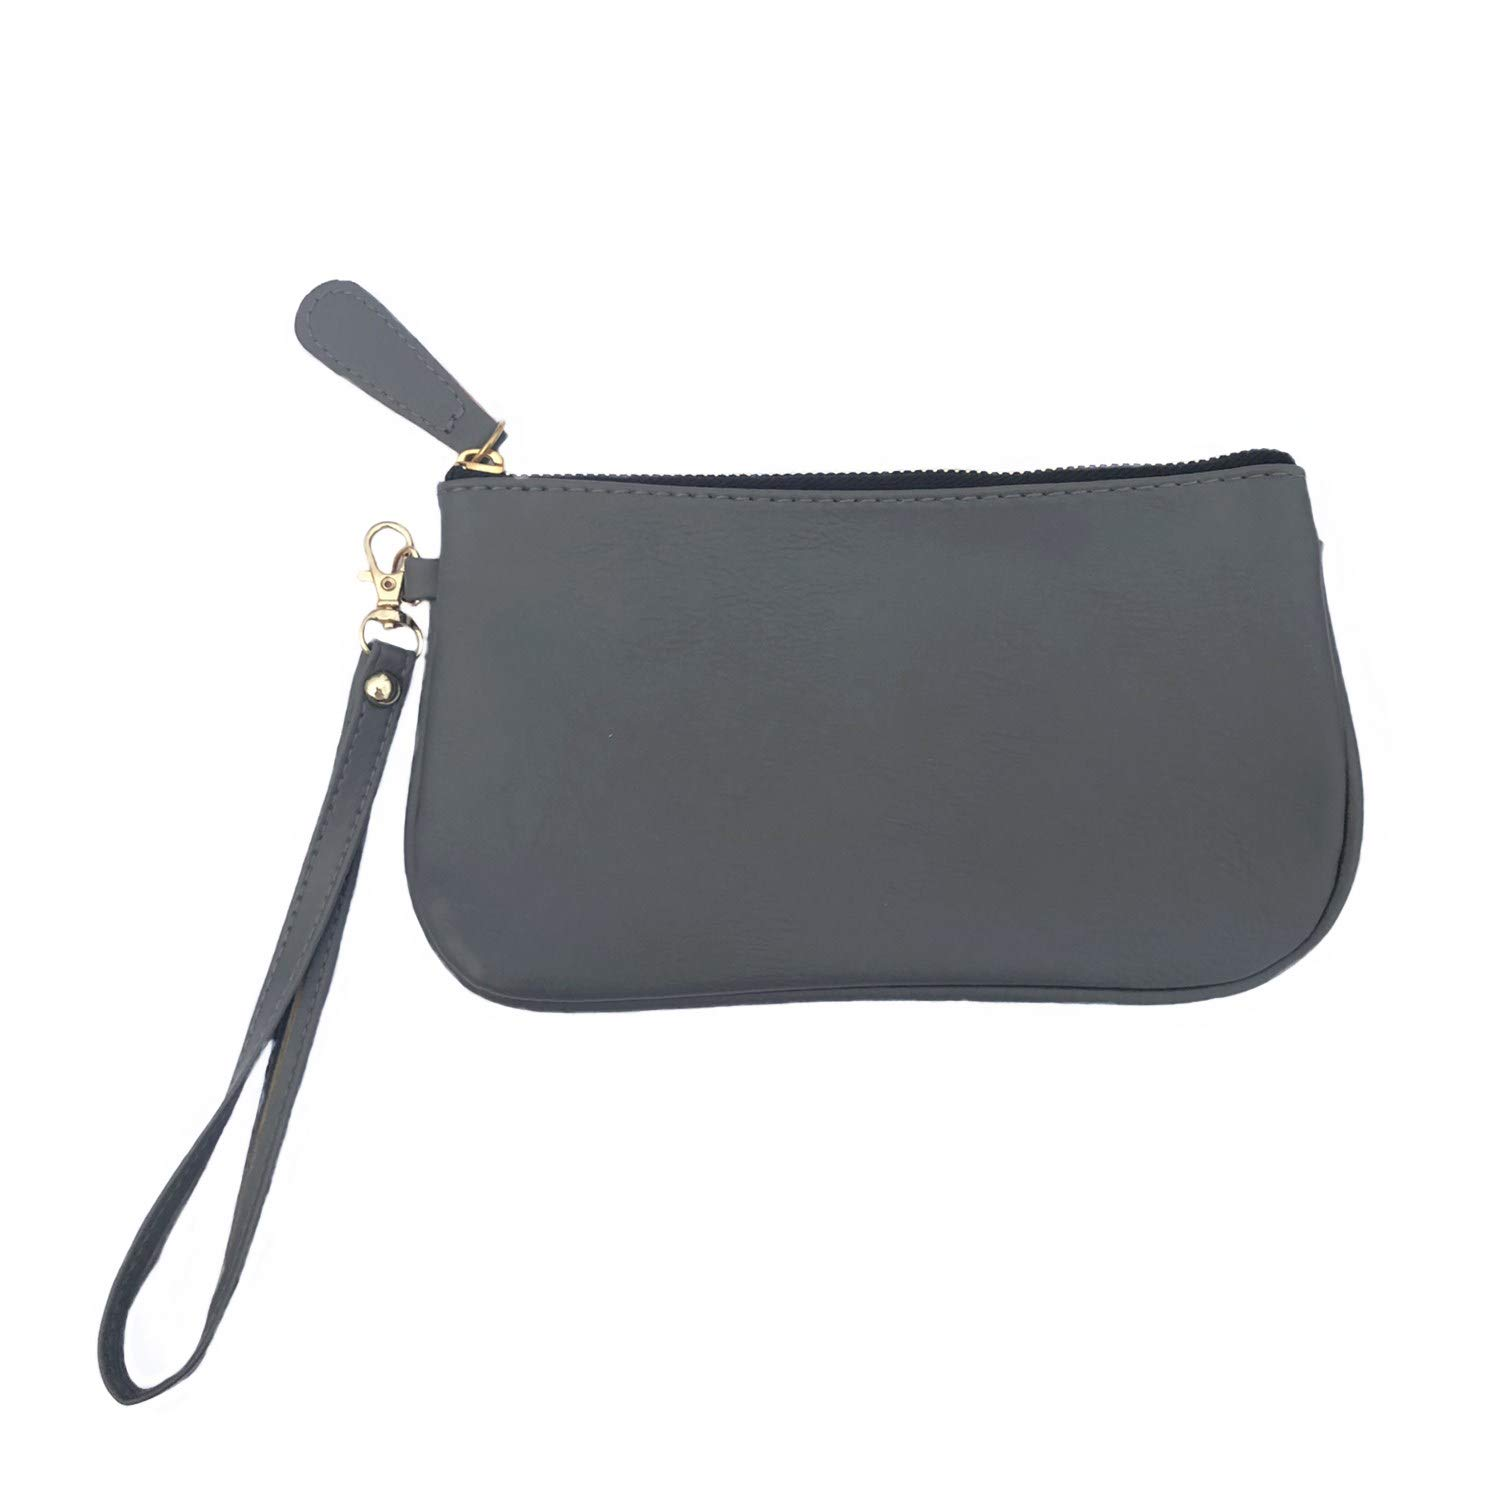 MONOBLANKS Leather Wristlet Wallet Small Phone Purse Handbag (Charcoal) by MONOBLANKS